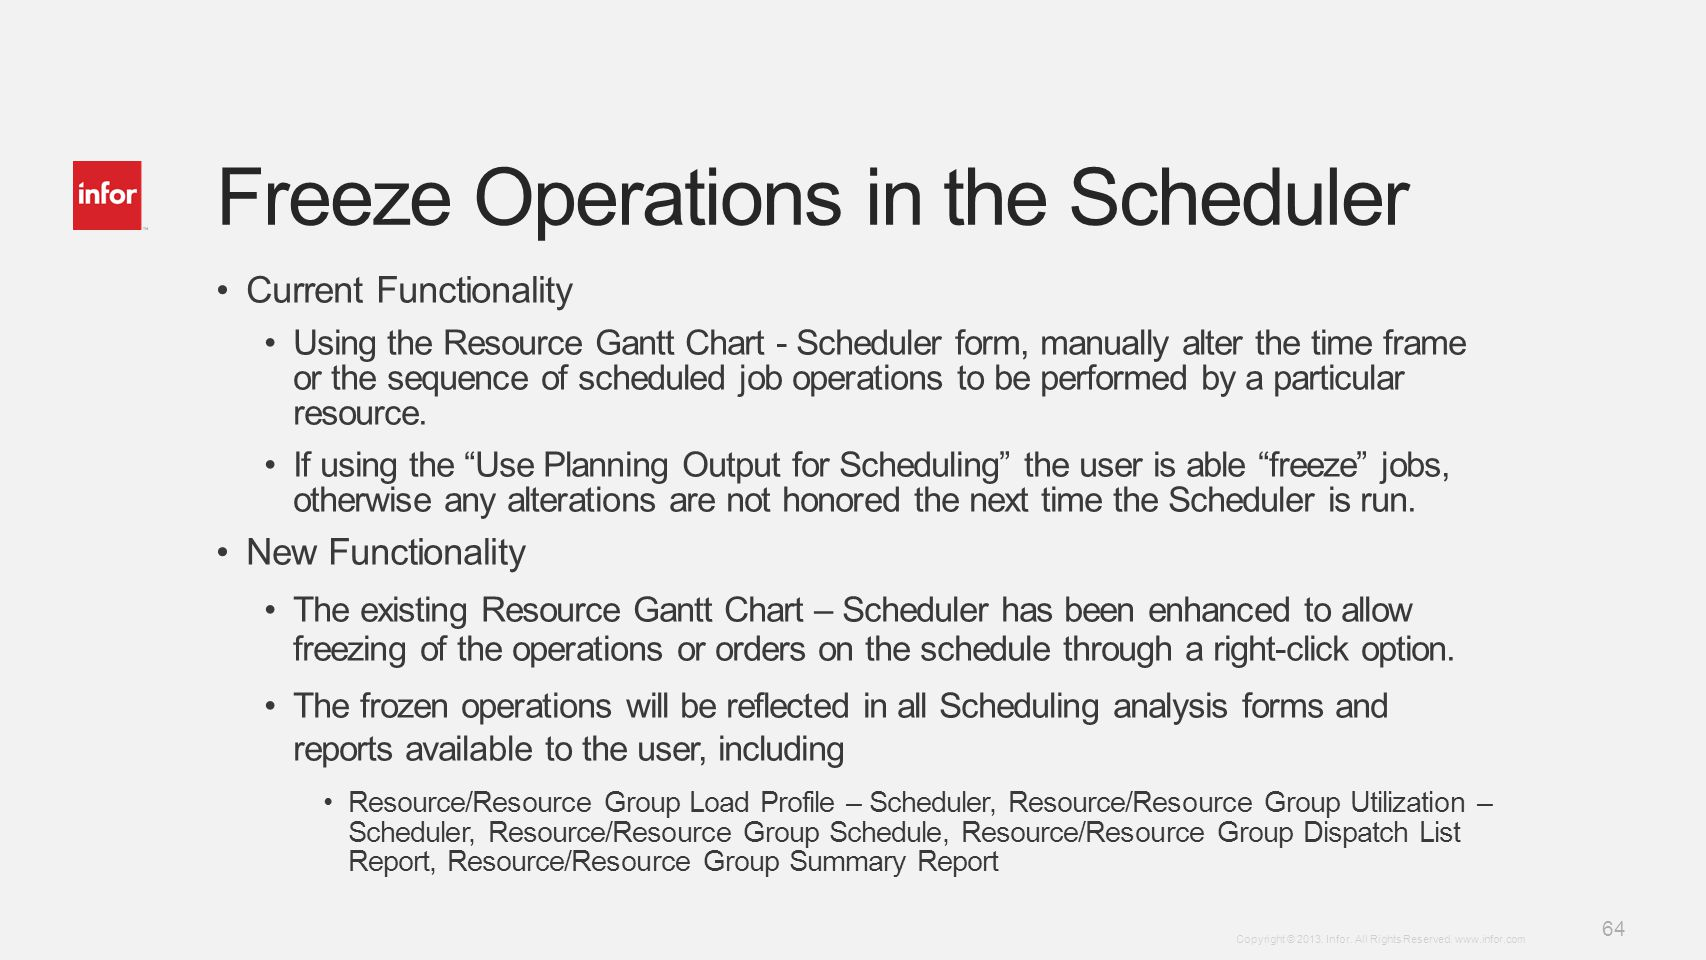 Freeze Operations in the Scheduler